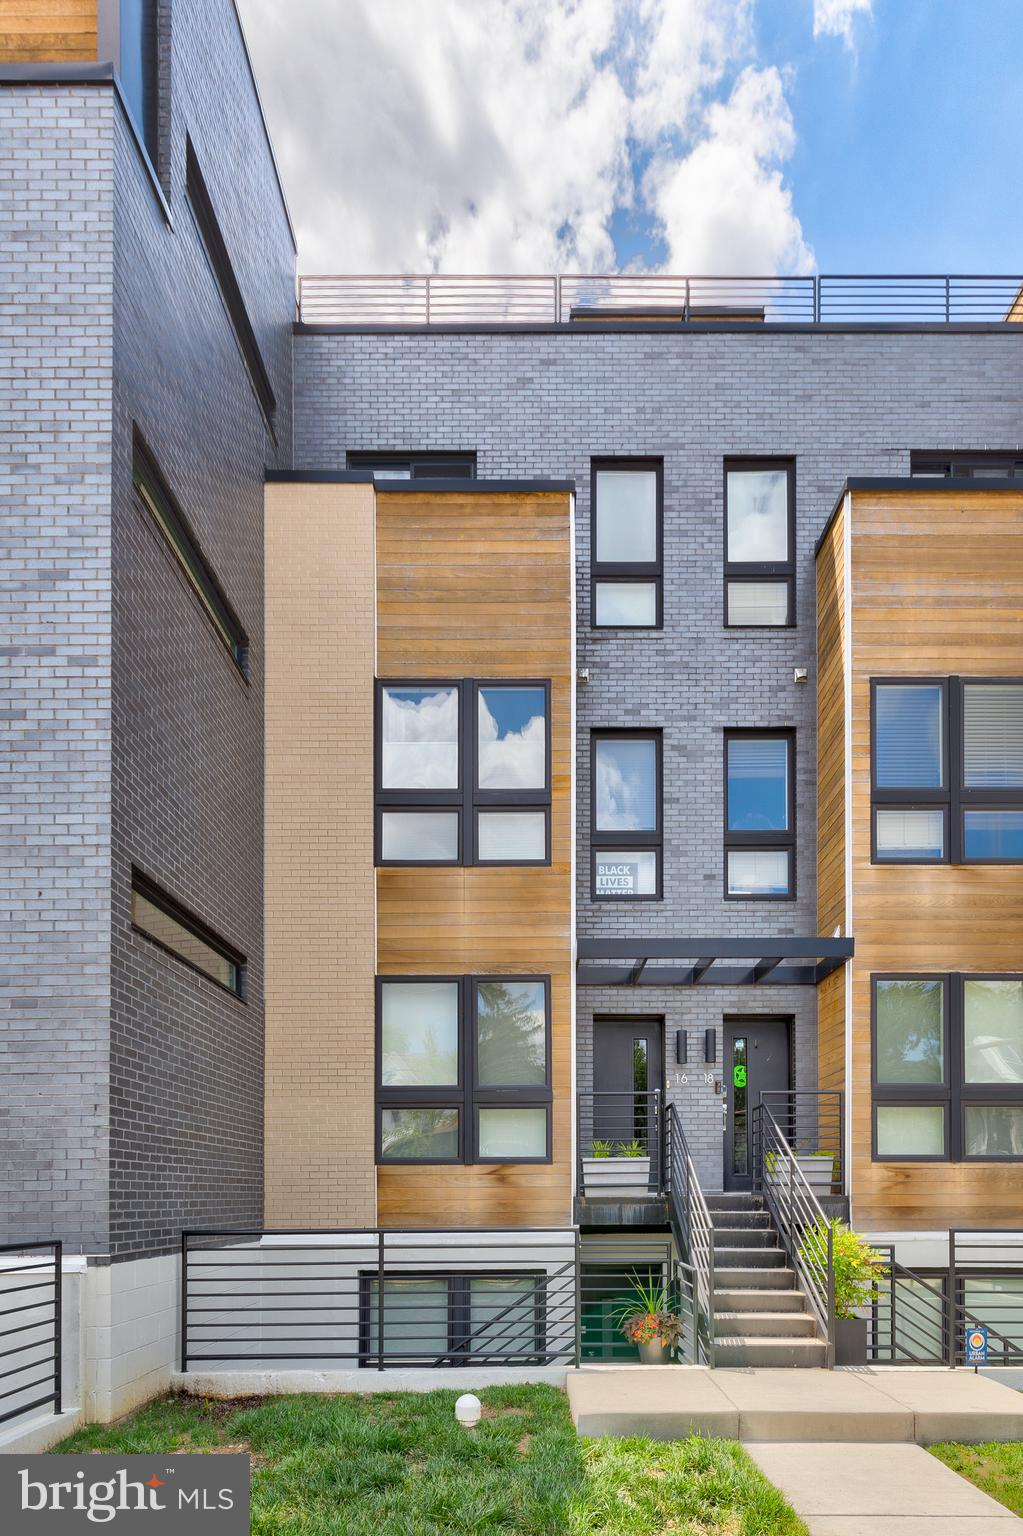 STUNNING New Listing at Brooks Row! This 2017 build modern boutique condo building is located in the